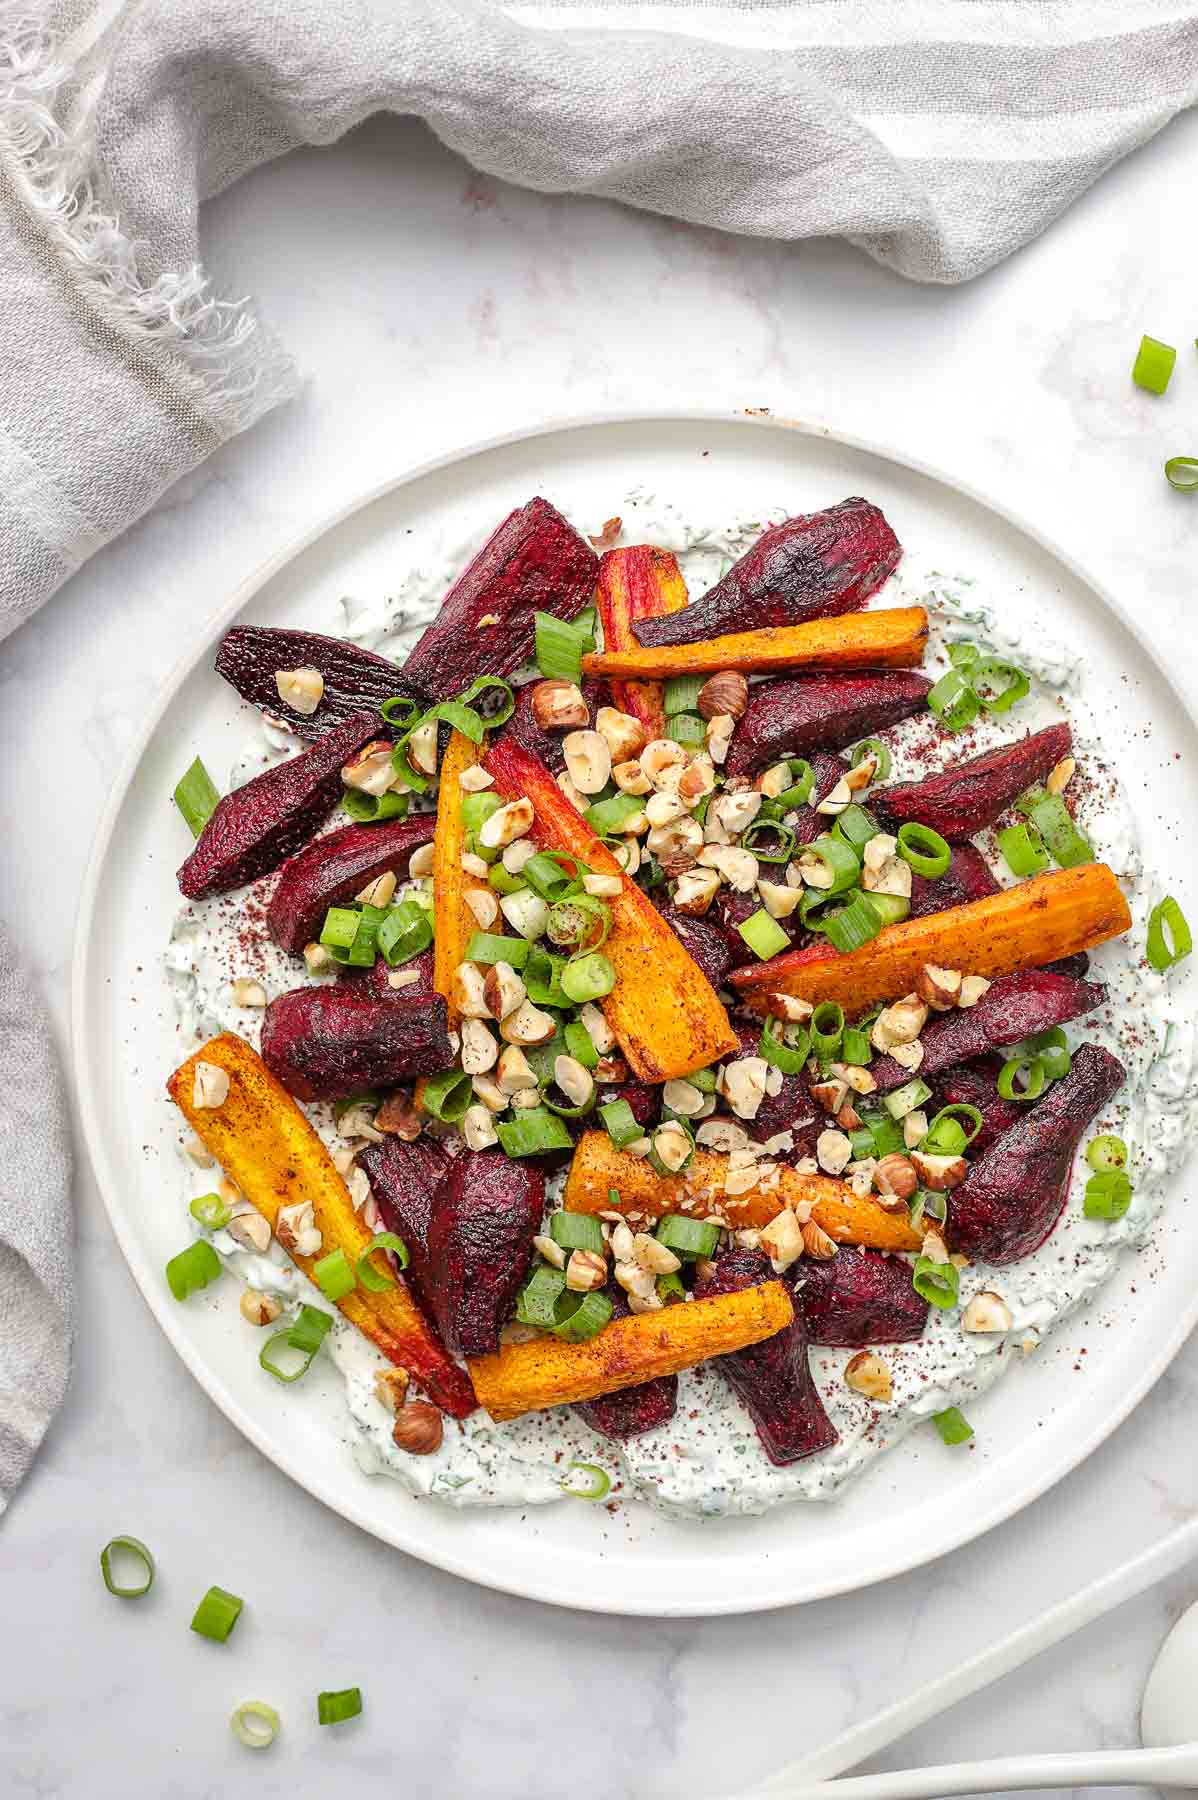 Roasted Beets and Carrots with Herbed Yogurt and Hazelnuts